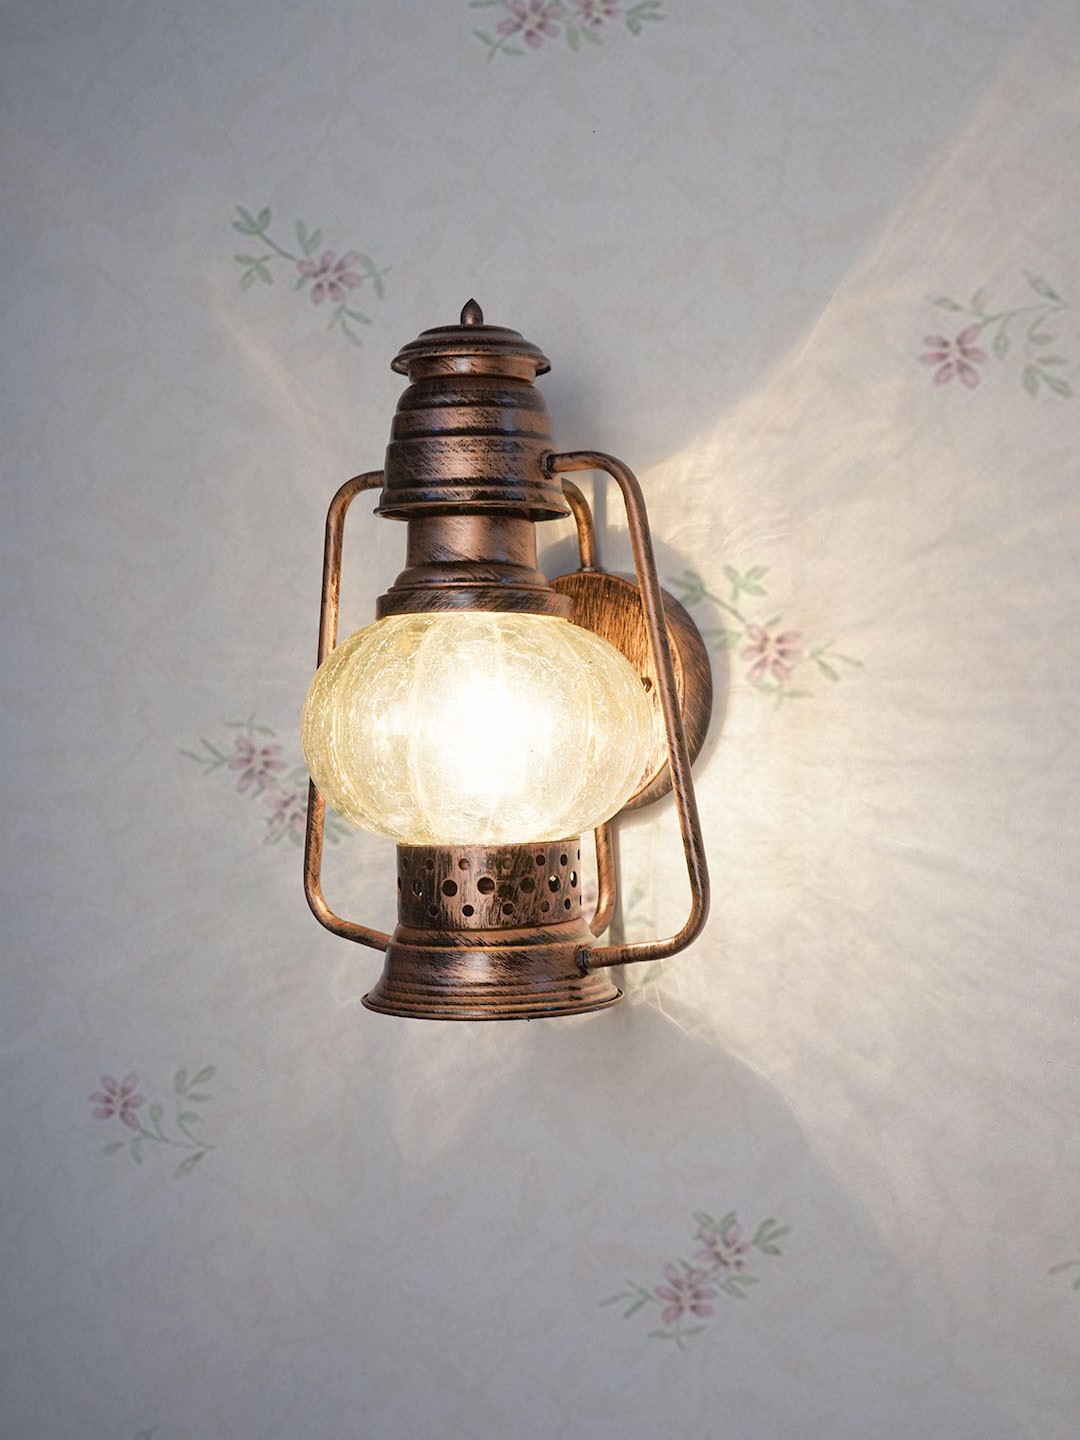 Wall Mounted Steel and Glass Lantern   Homedecor   Antique Copper Colour   Attractive Wall Light